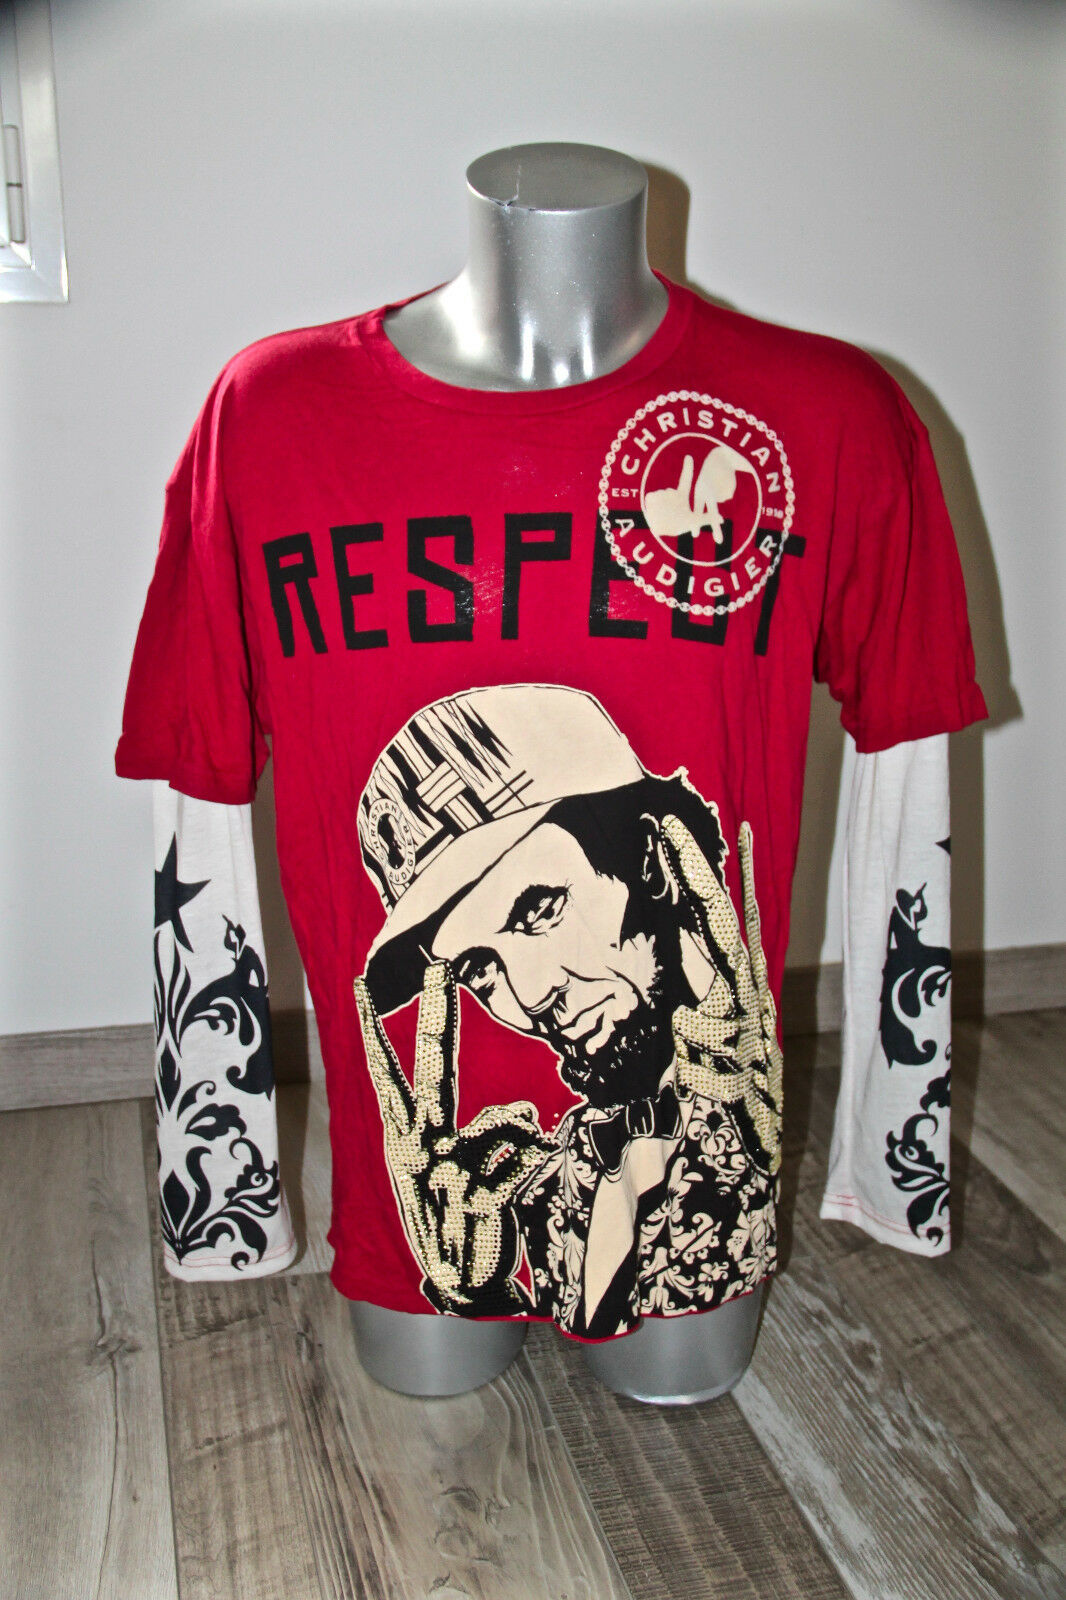 Sudadera superpuesto strass CHRISTIAN AUDIGIER modelo respect T XL NUEVO valor